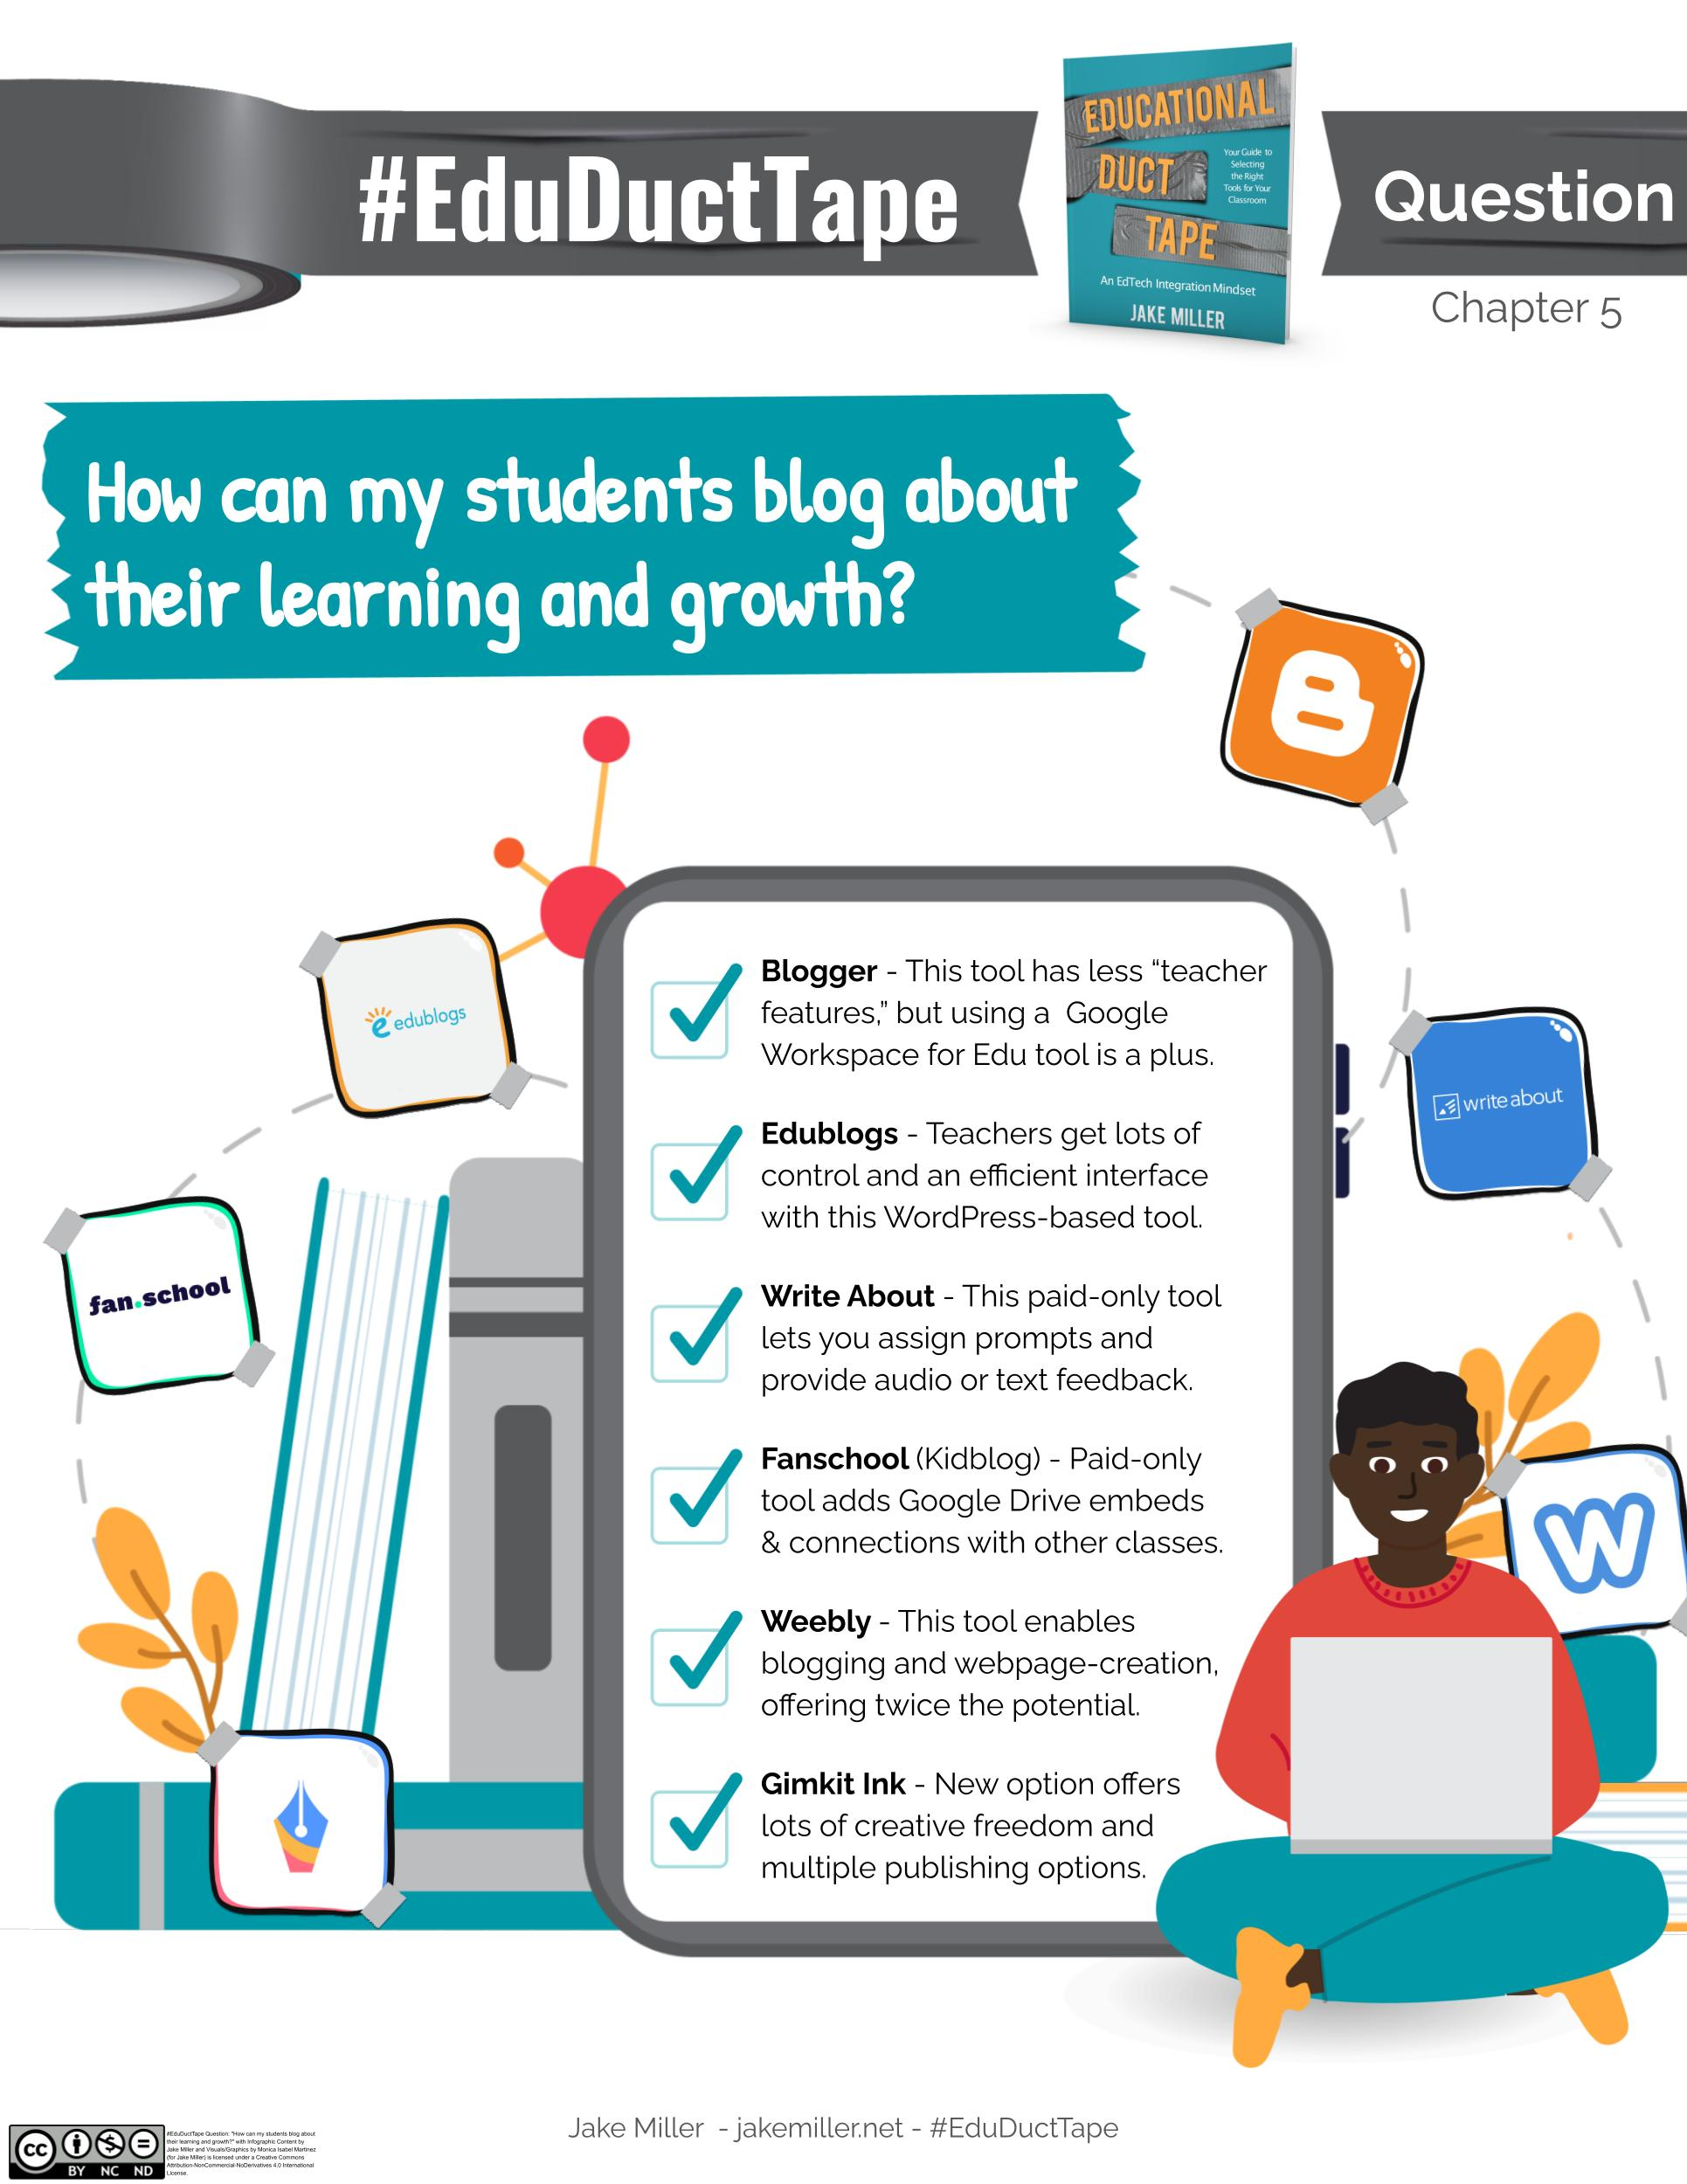 """This image features the #EduDuctTape Question from Chapter 5 of my book. It shows a picture of the Educational Duct Tape book cover, a boy typing on a laptop, and a collection of books, along with logos for the apps that are included. The text states """"How can my students blog about their learning and growth? Blogger - This tool has less """"teacher features,"""" but using a Google Workspace for Edu tool is a plus. Edublogs - Teachers get lots of control and an efficient interface with this WordPress-based tool. Write About - This paid-only tool lets you assign prompts and provide audio or text feedback. Fanschool (Kidblog) - Paid-only tool adds Google Drive embeds & connections with other classes. Weebly - This tool enables blogging and webpage-creation, offering twice the potential. Gimkit Ink - New option offers lots of creative freedom and multiple publishing options."""""""